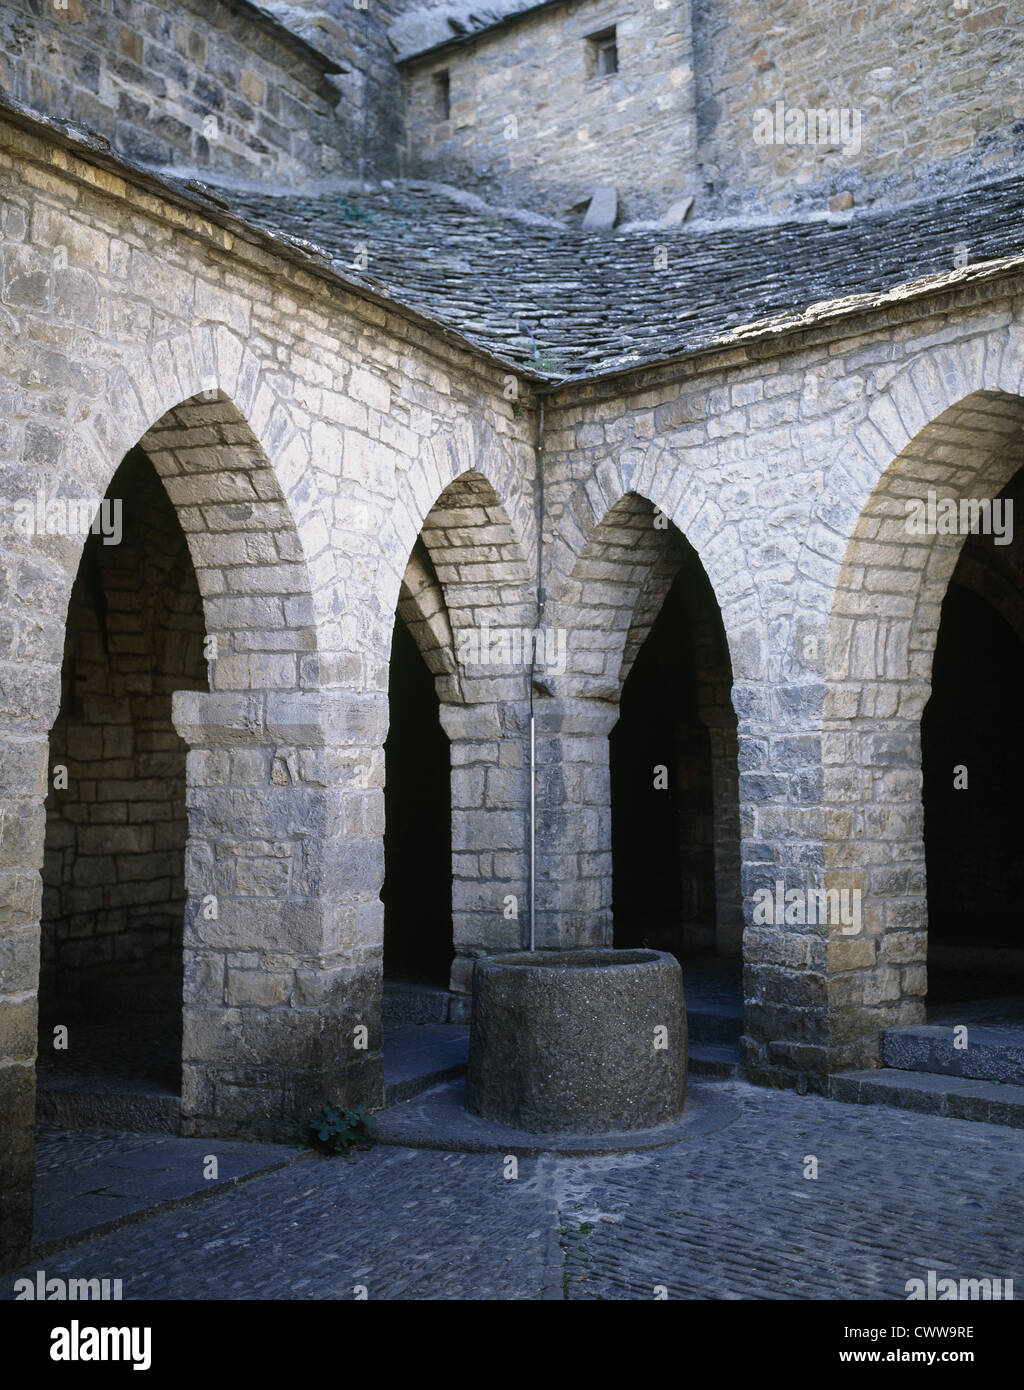 Spain. Aragon. Ainsa. Collegiate of St. Mary. Romanesque. Triangular cloister. - Stock Image